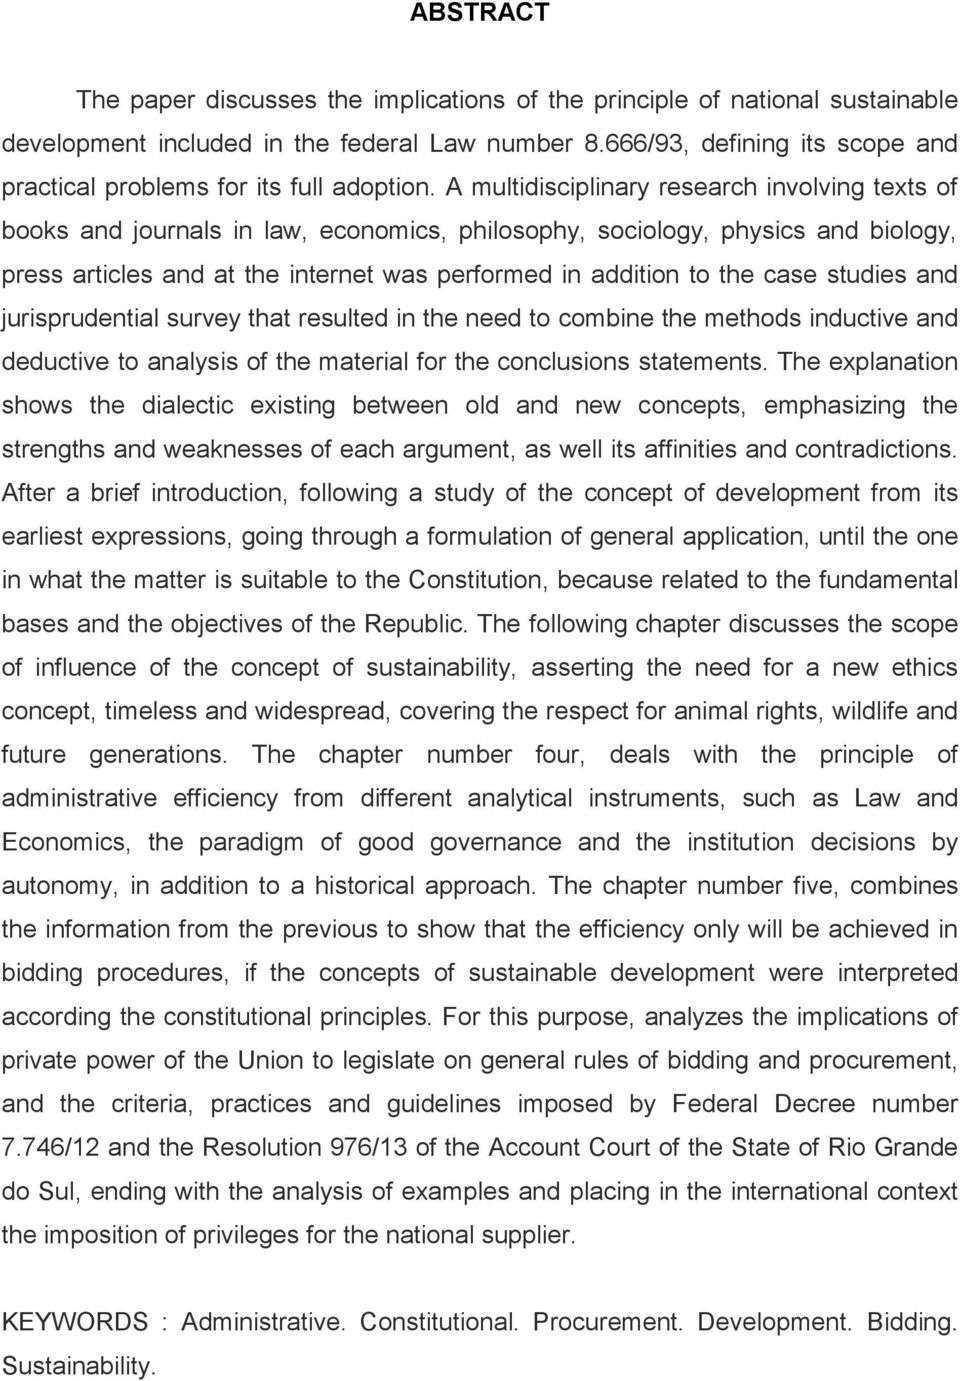 A multidisciplinary research involving texts of books and journals in law, economics, philosophy, sociology, physics and biology, press articles and at the internet was performed in addition to the